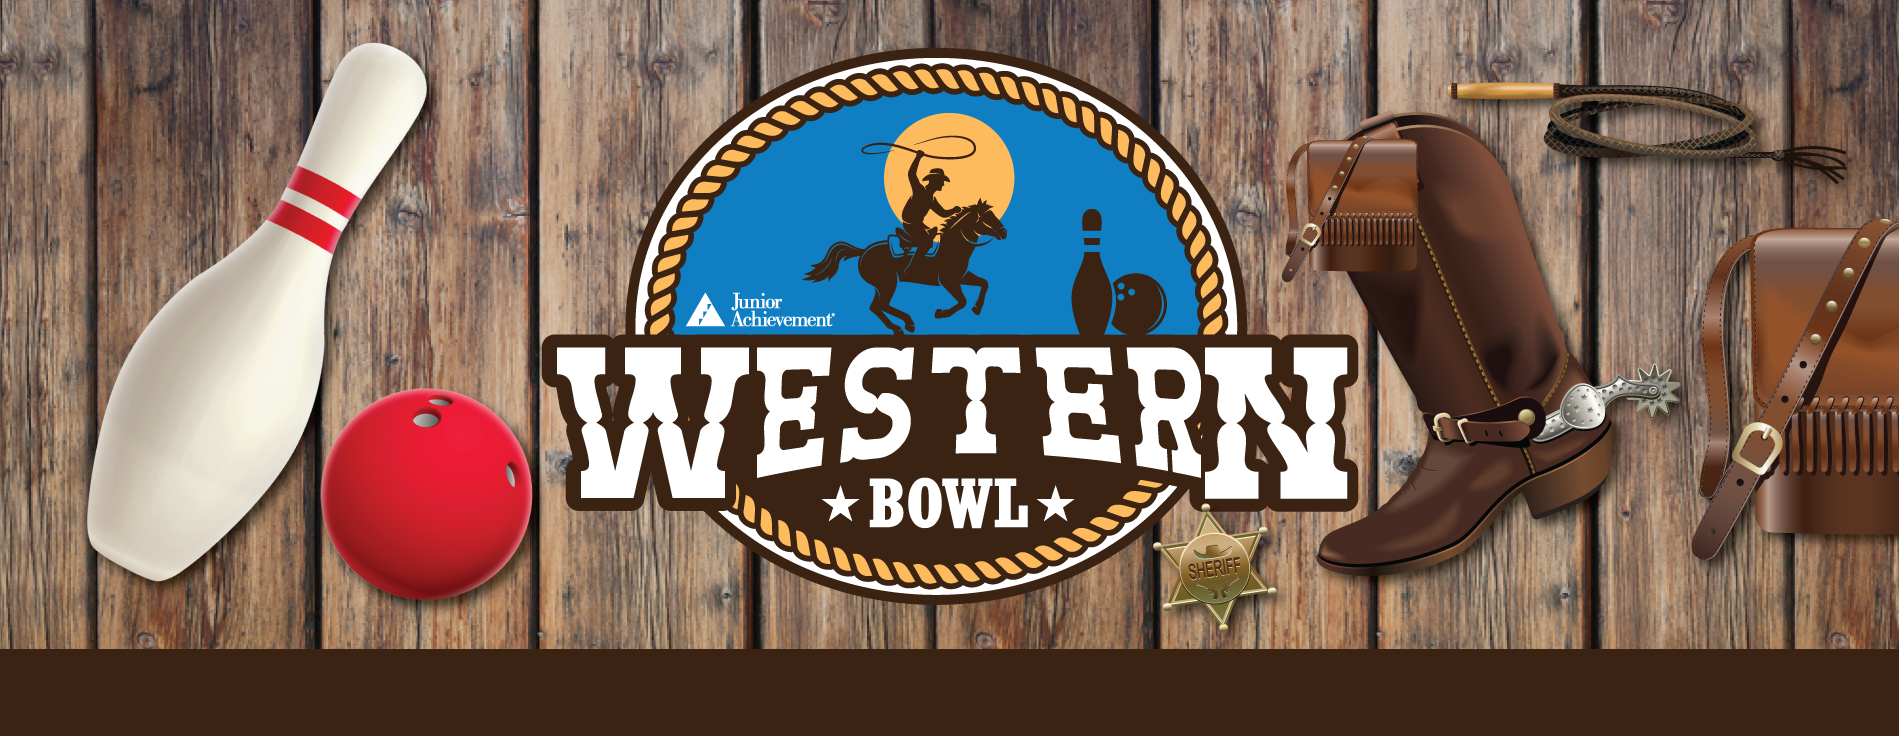 San Antonio Fall 2017 Western Bowl